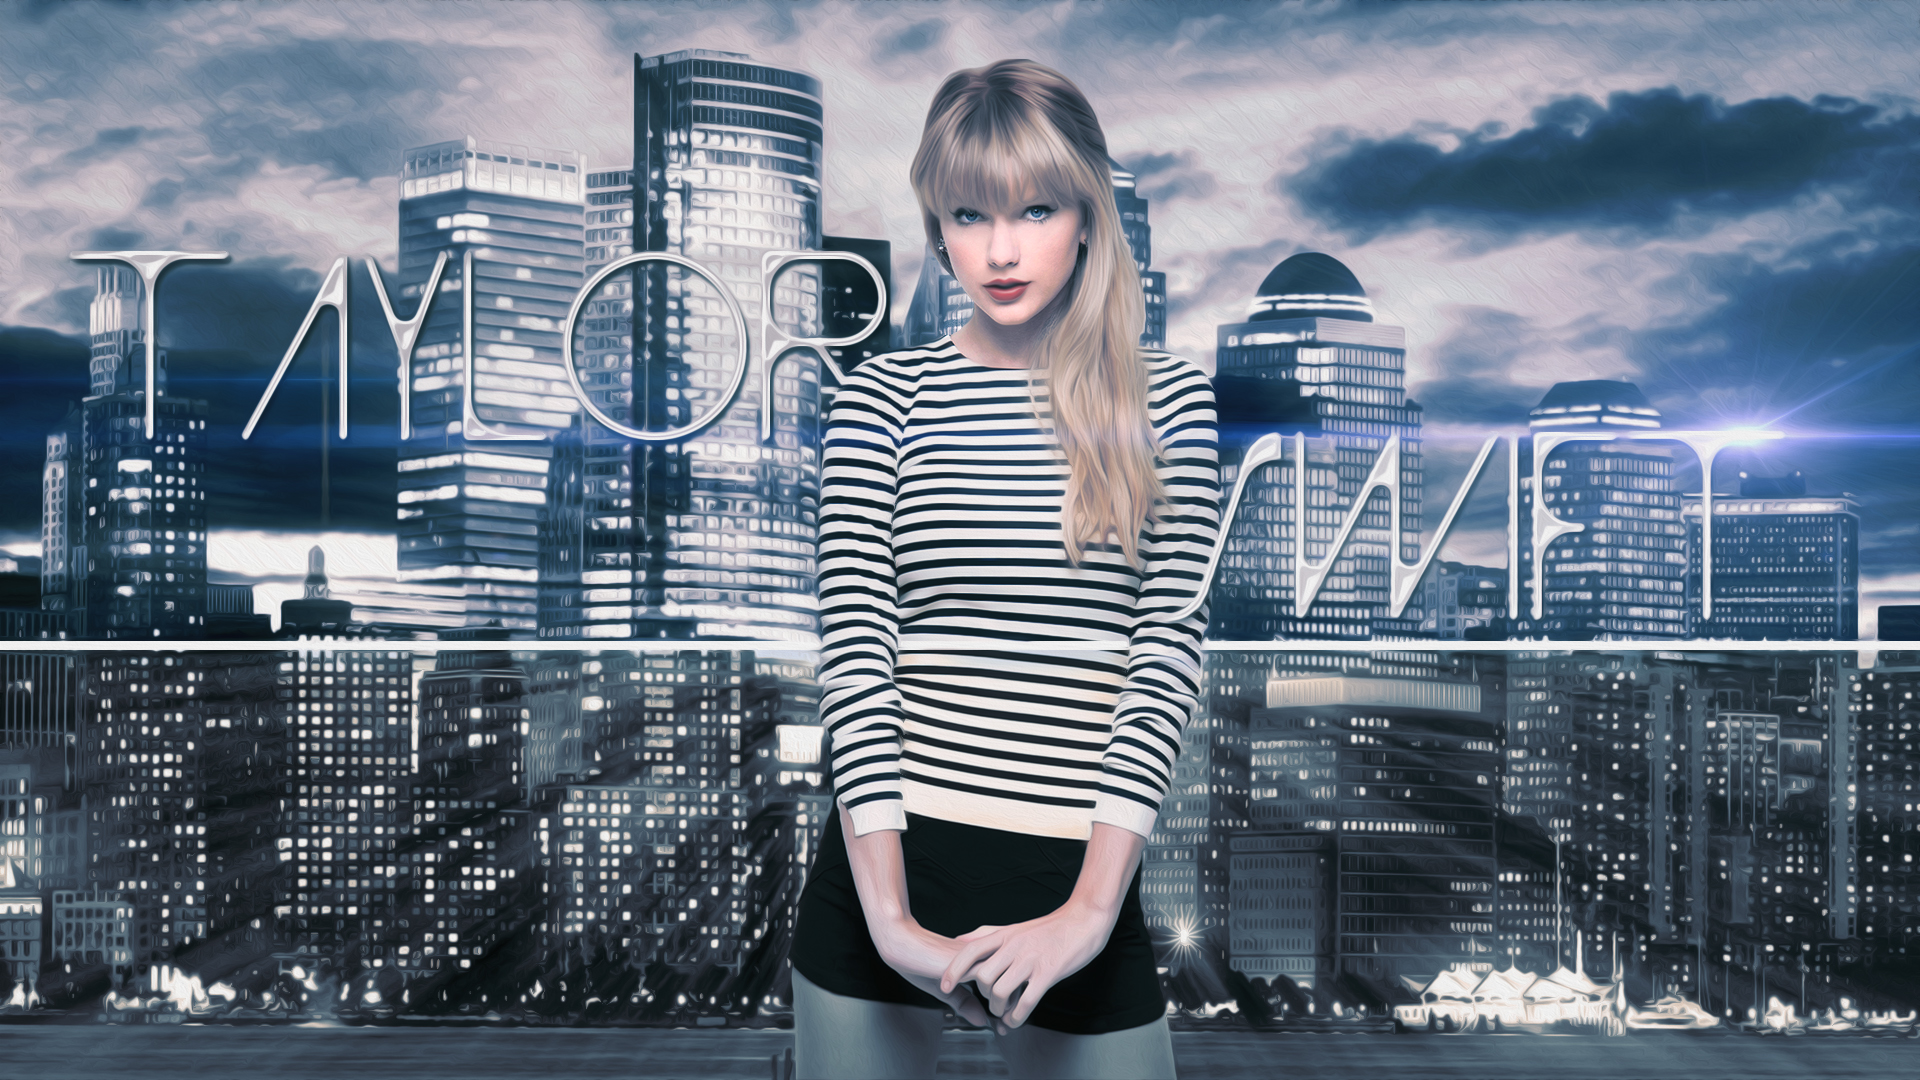 taylor_swift_picture-wallpaper